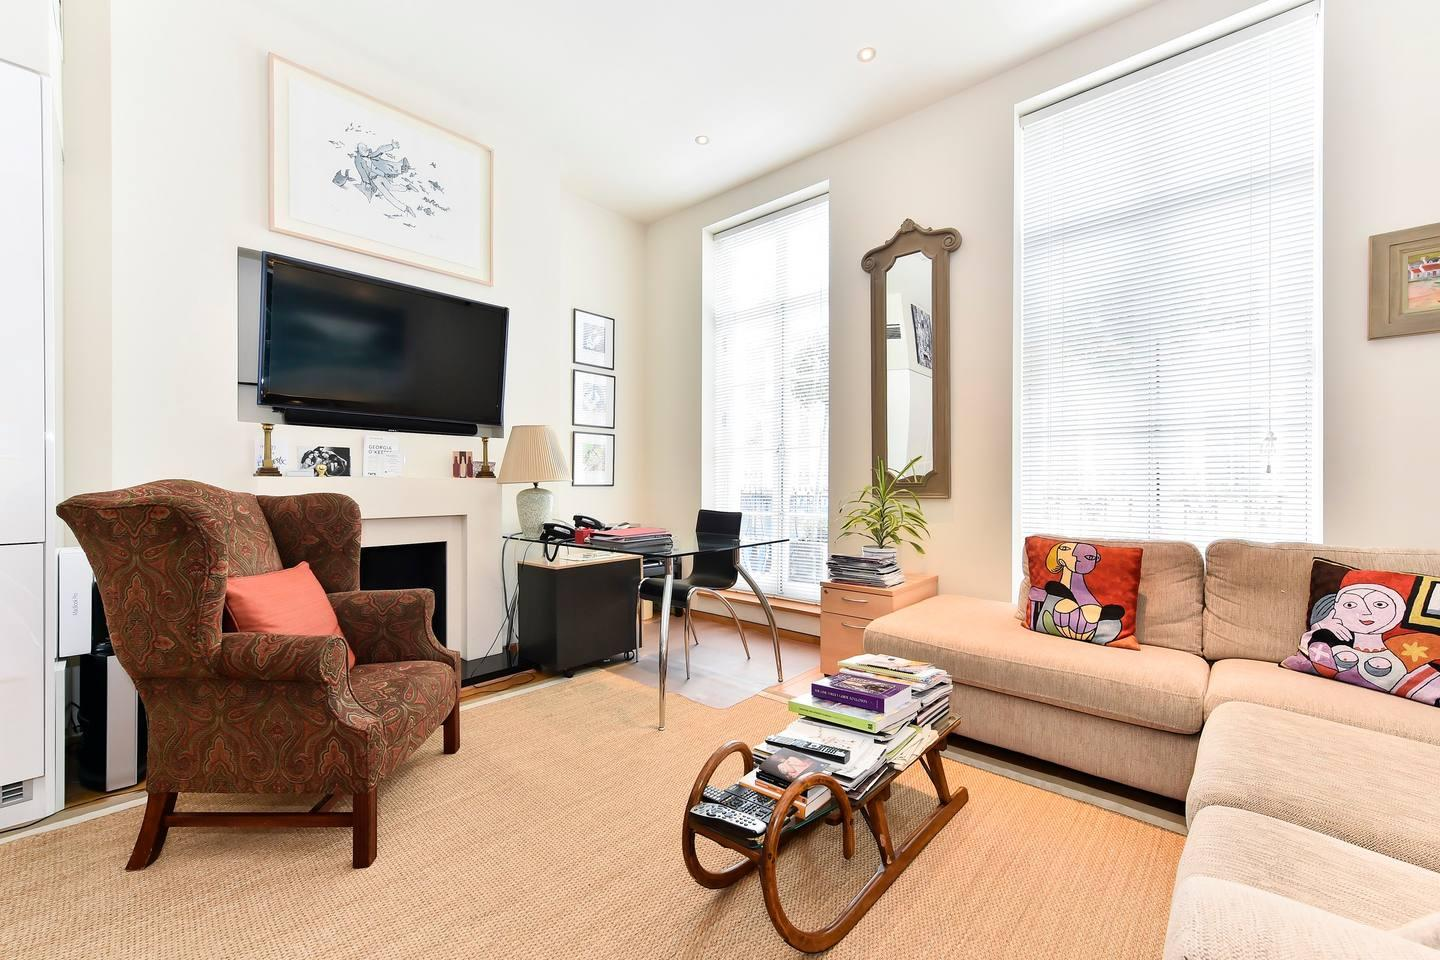 Property Image 2 - Elegant Pimlico flat for 6 guests w/ rooftop terrace